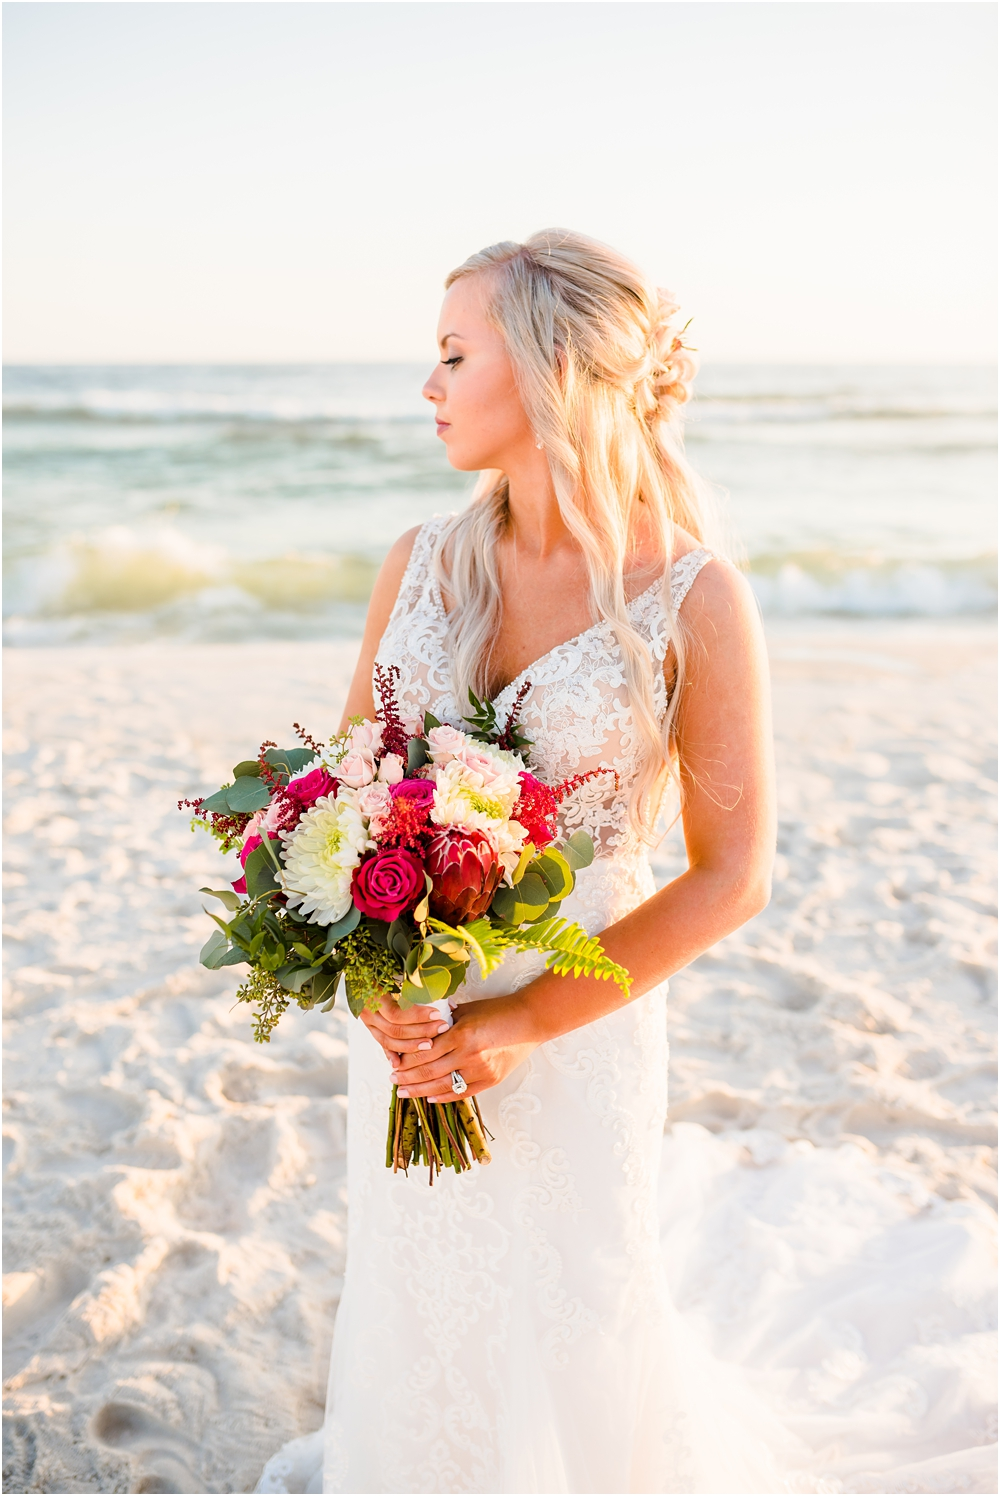 mcglothlin-wedding-kiersten-stevenson-photography-30a-panama-city-beach-dothan-tallahassee-(98-of-145).jpg